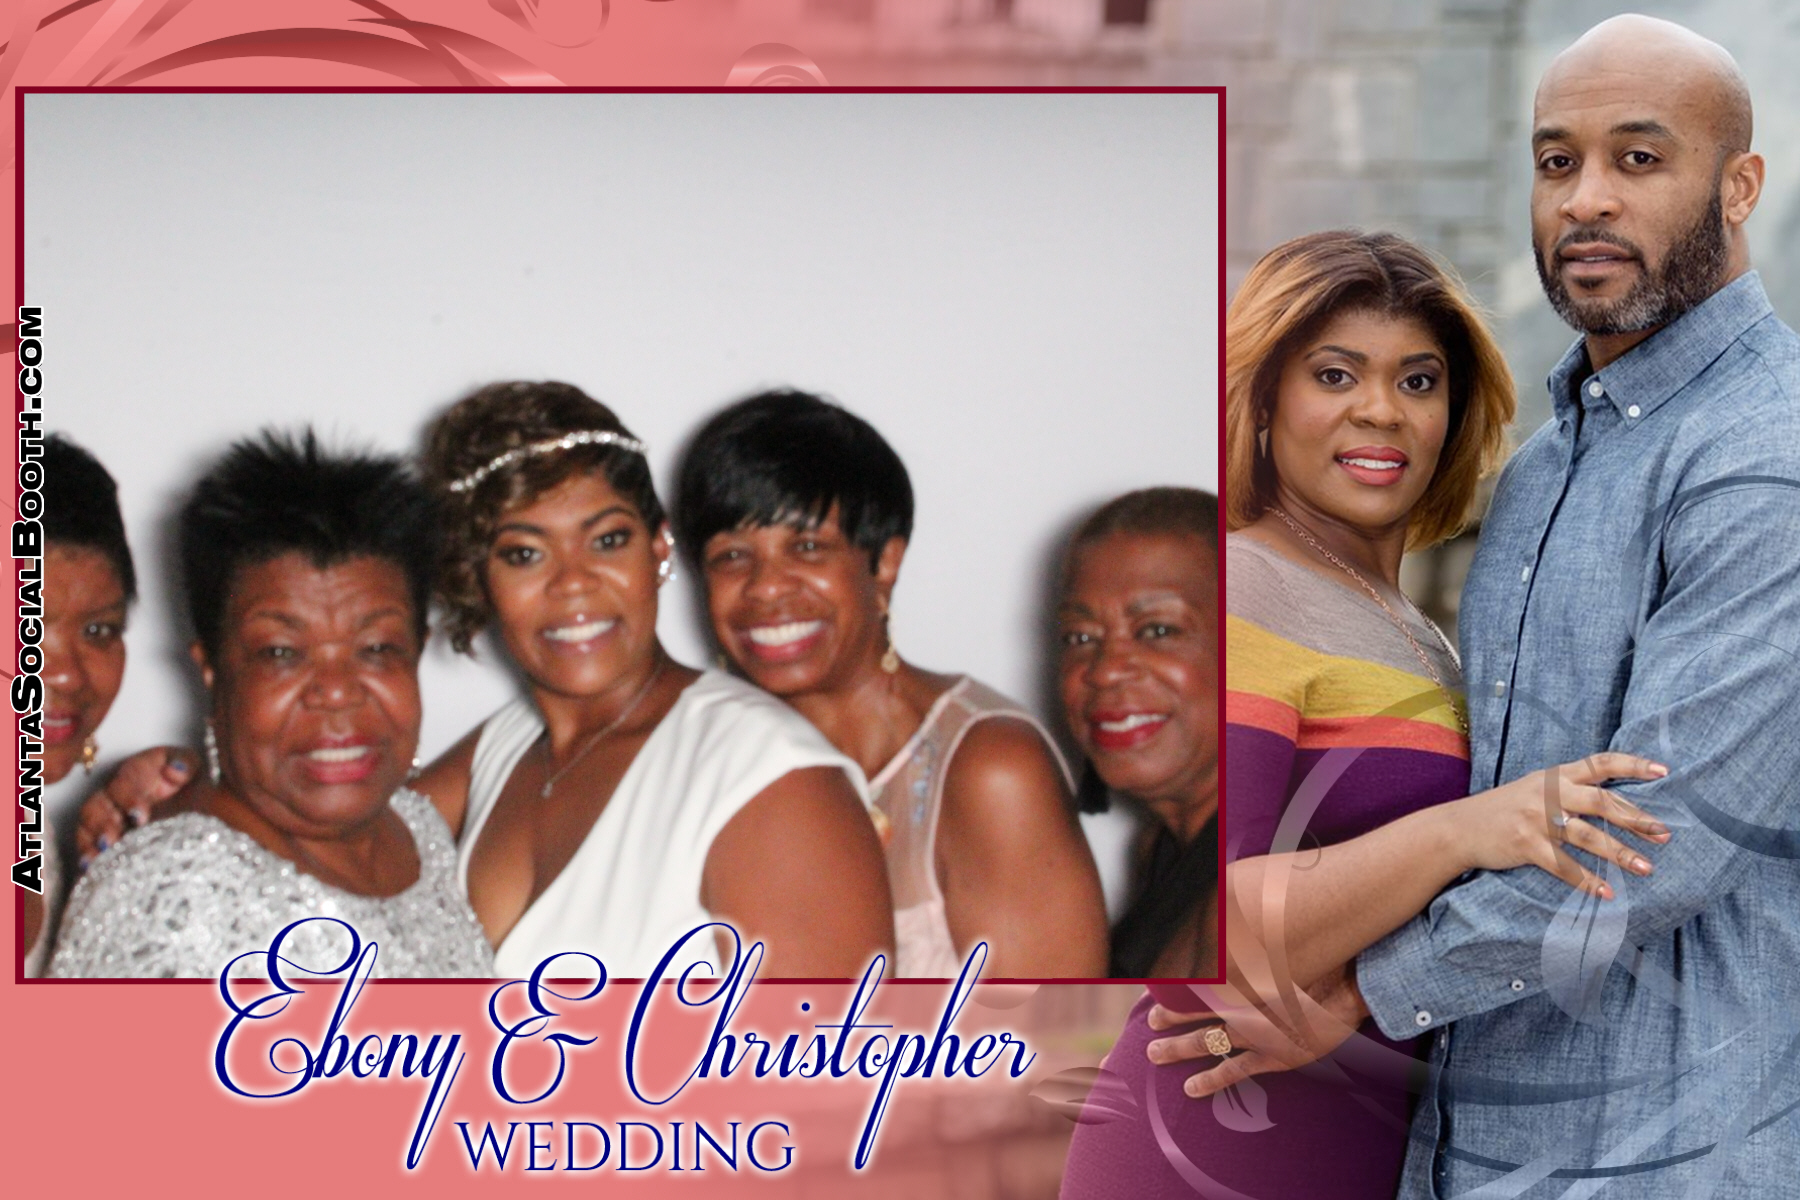 Ebony & Christopher Wedding